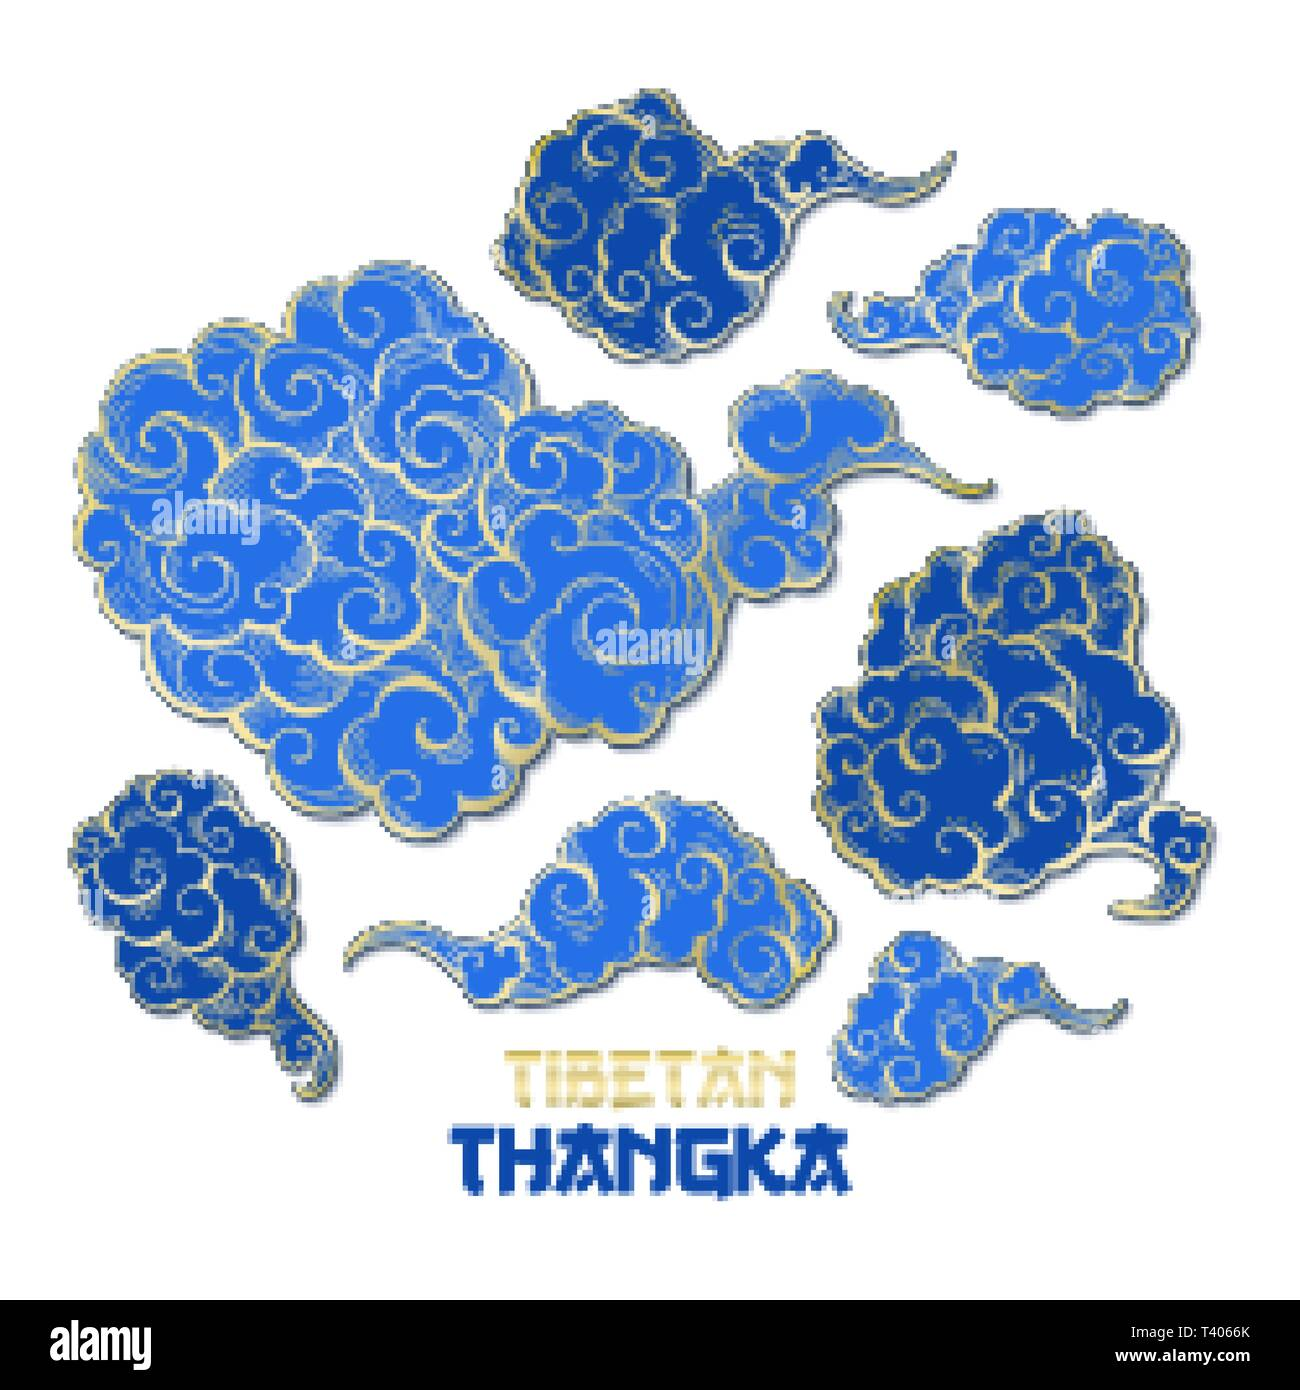 Chinese or Tibetian Golden Outline and Blue Vector Clouds Collection. Asian Oriental Artistic Tangka Illustration. Paper Art Style - Stock Image